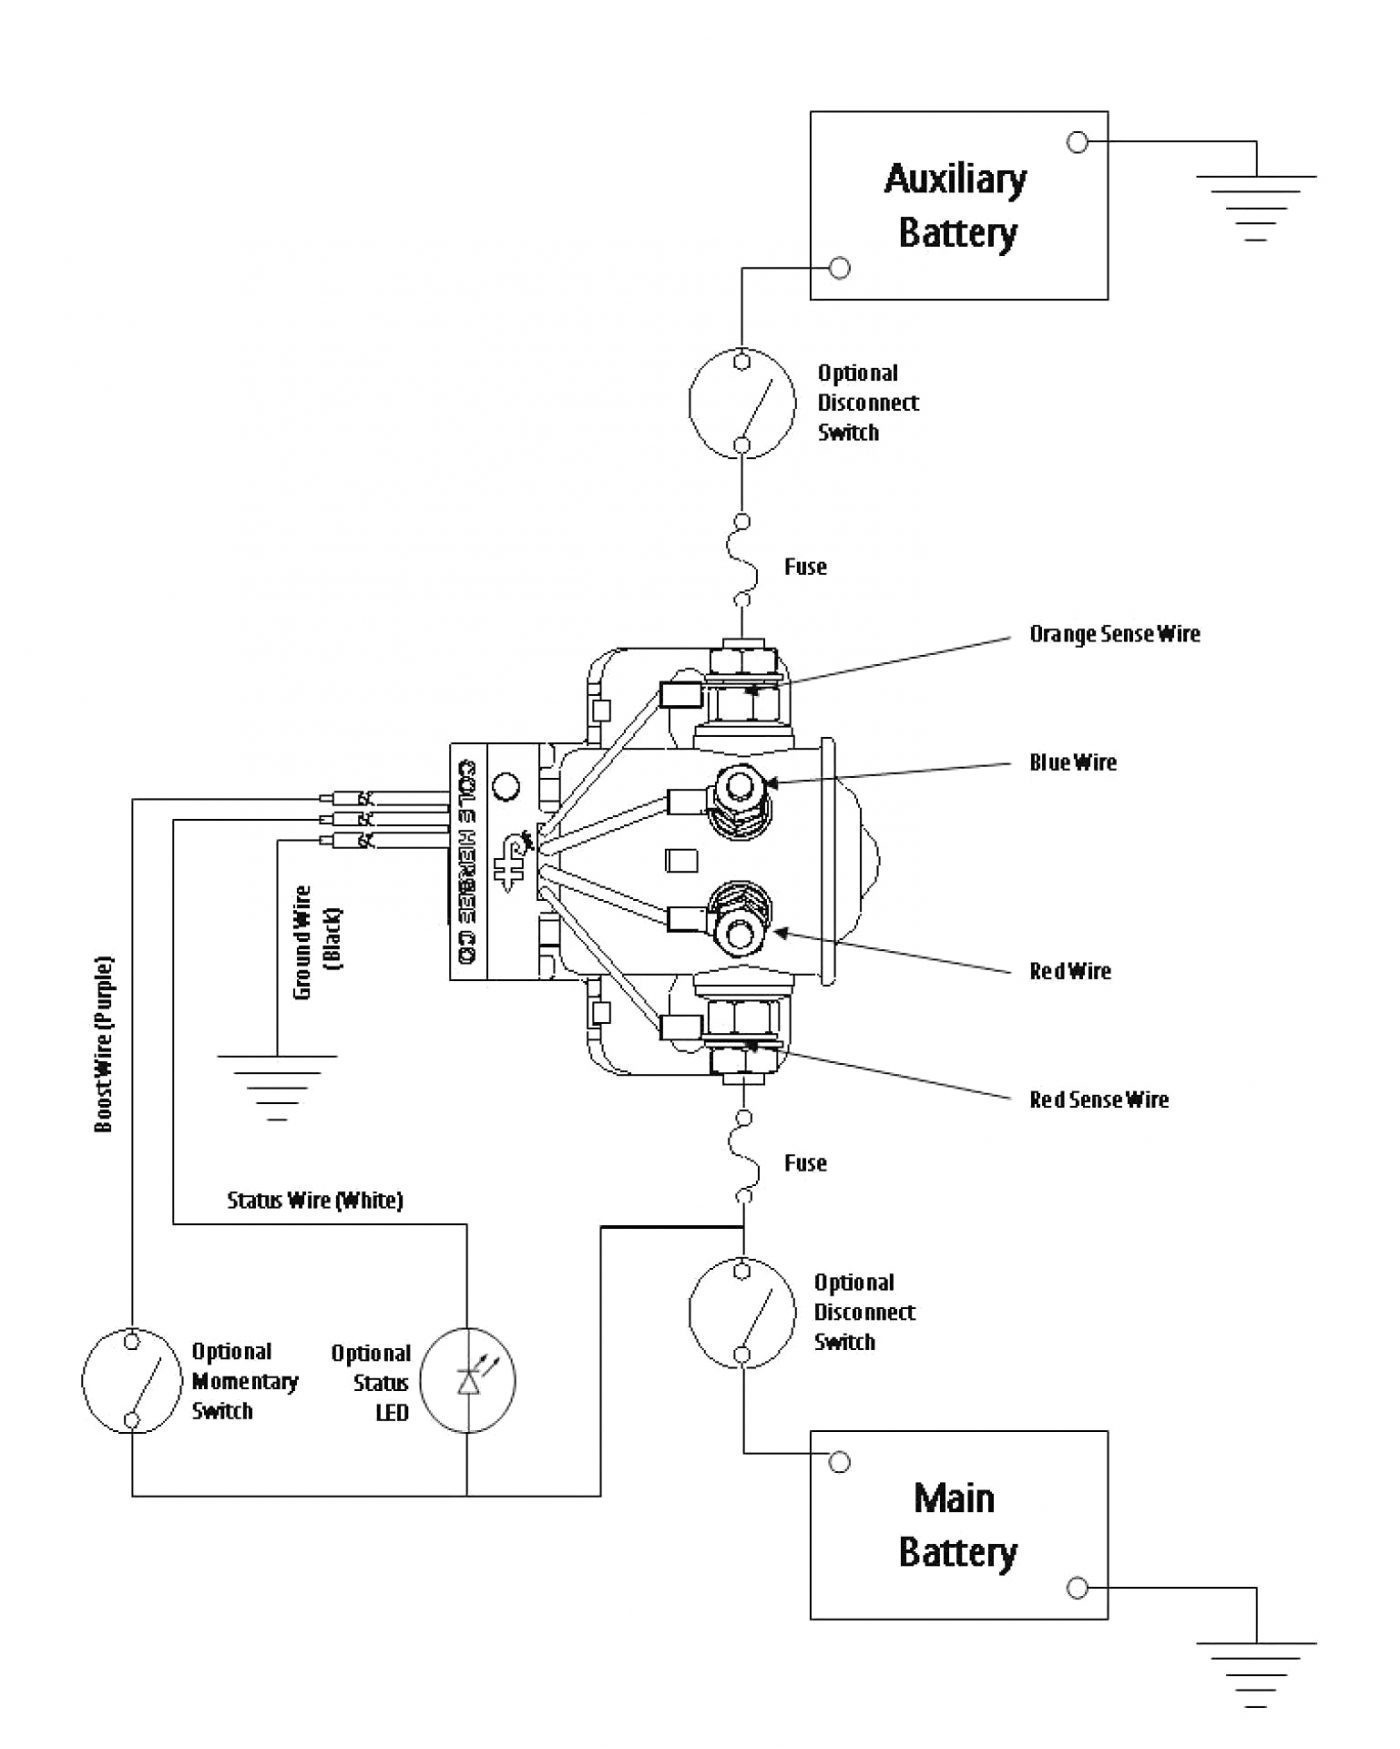 1990 club car parts wiring diagram image. Black Bedroom Furniture Sets. Home Design Ideas